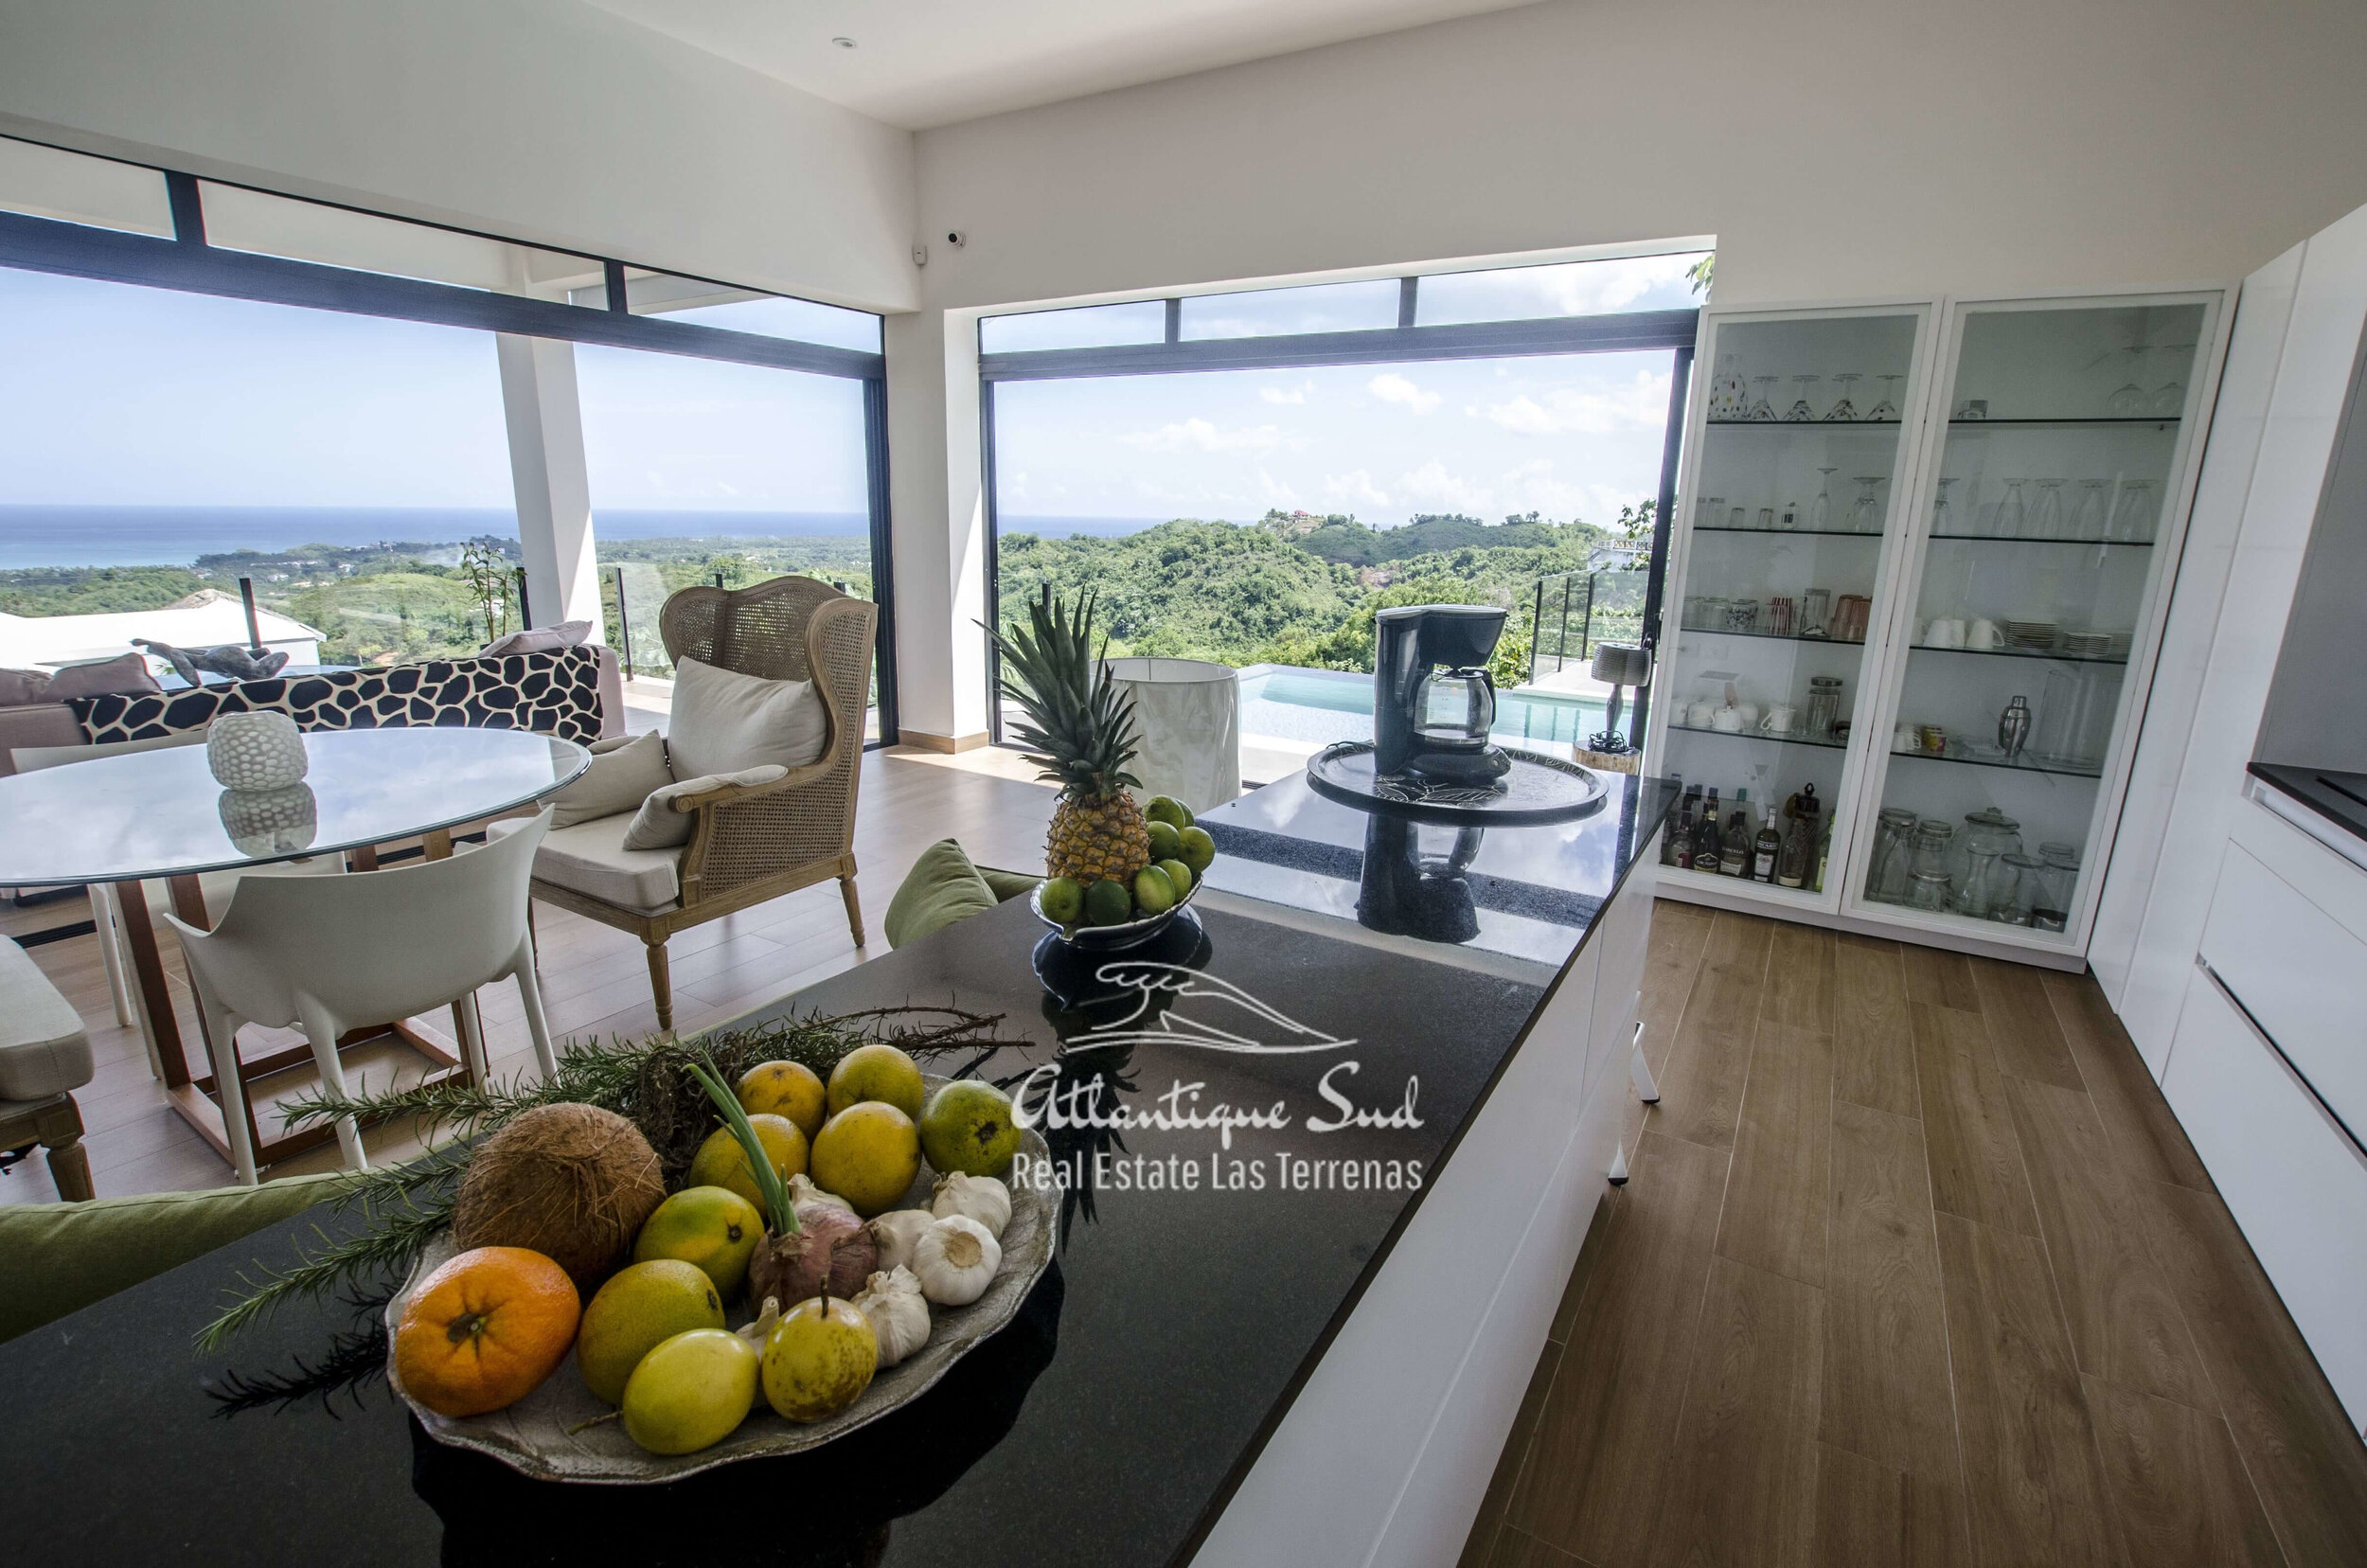 3BR Villa for sale in verde hill las terrenas 4-min.jpg